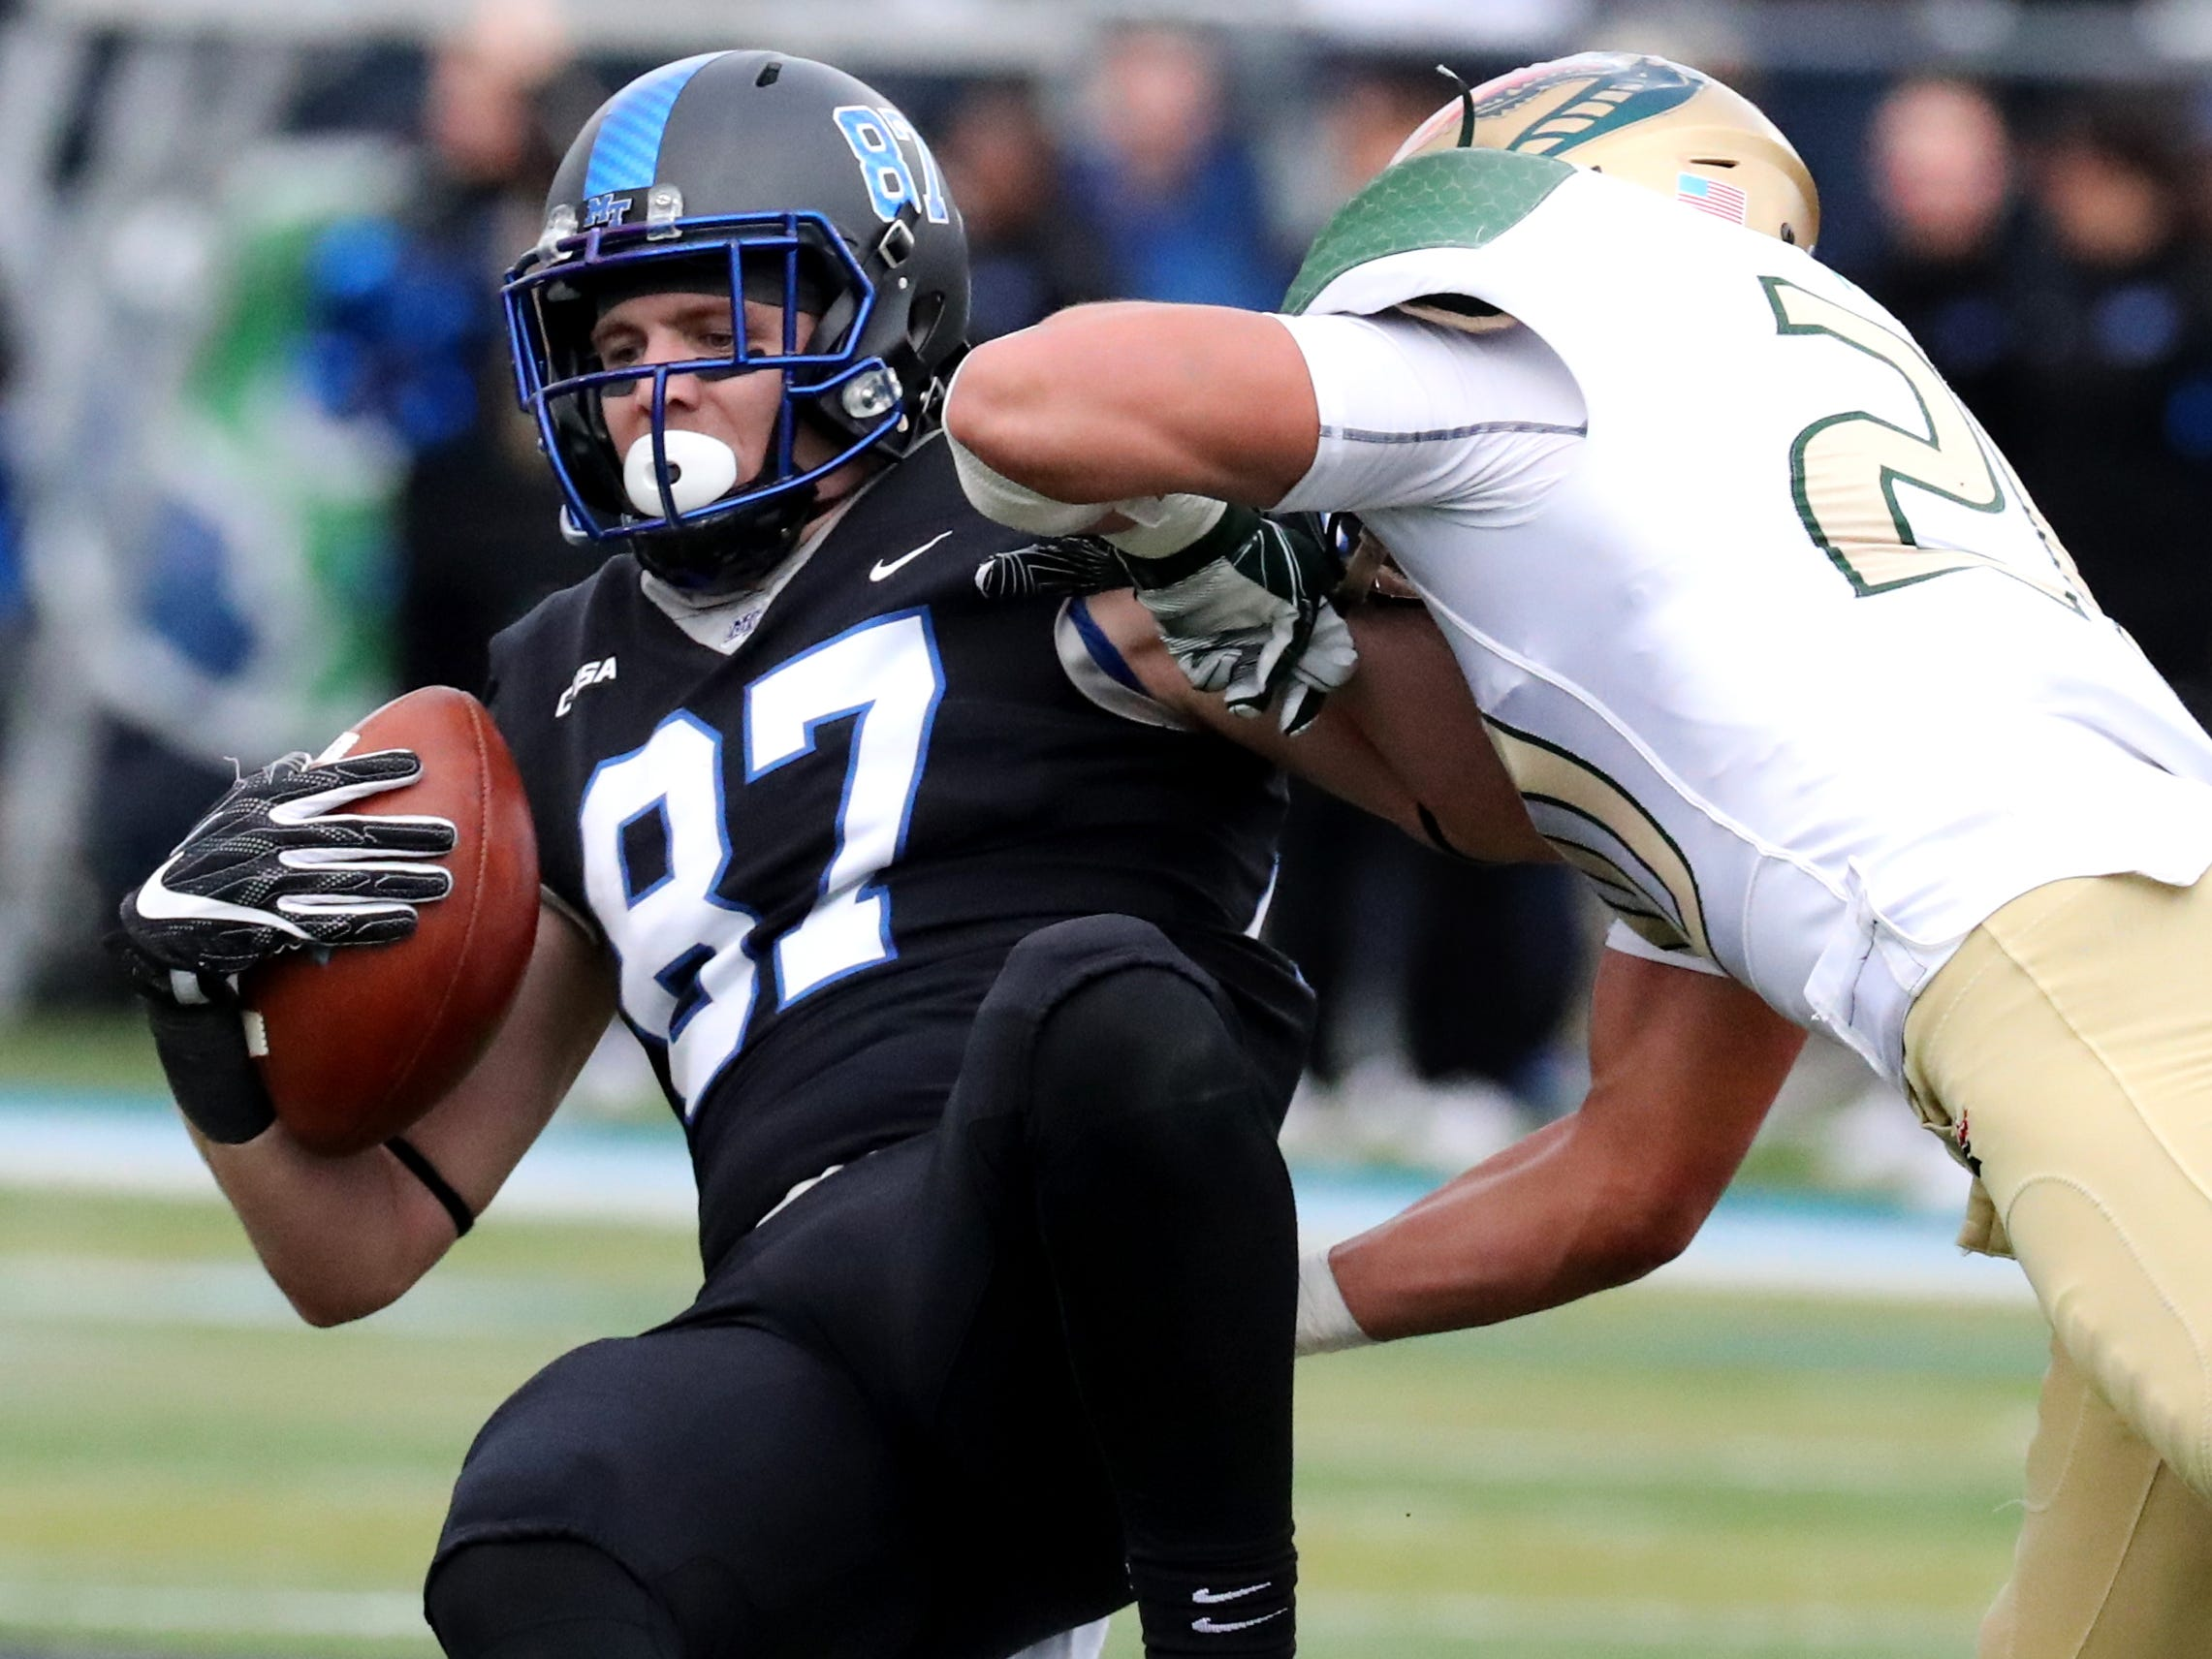 MTSU's wide receiver Gatlin Casey (87) catches the ball and runs as UAB's linebacker Kristopher Moll (20)makes the  tackle during the Conference USA Championship at MTSU on Saturday, Dec. 1, 2018.